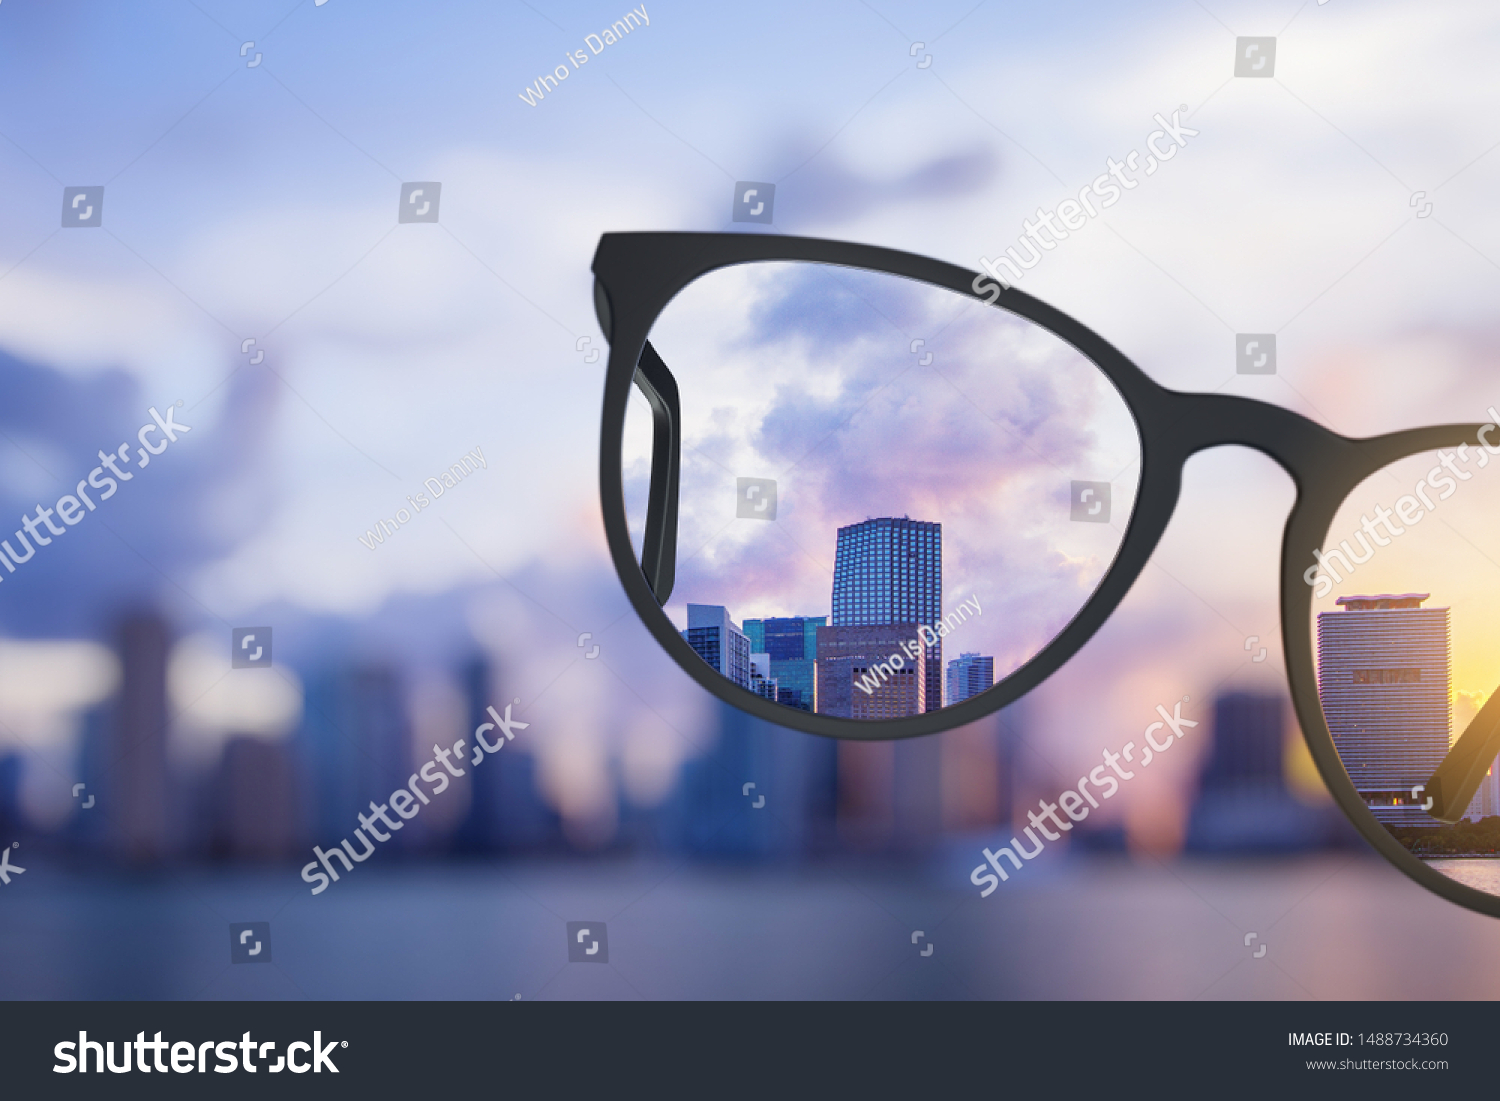 Modern bright city view through eyeglasses. Blurry background. Vision concept #1488734360